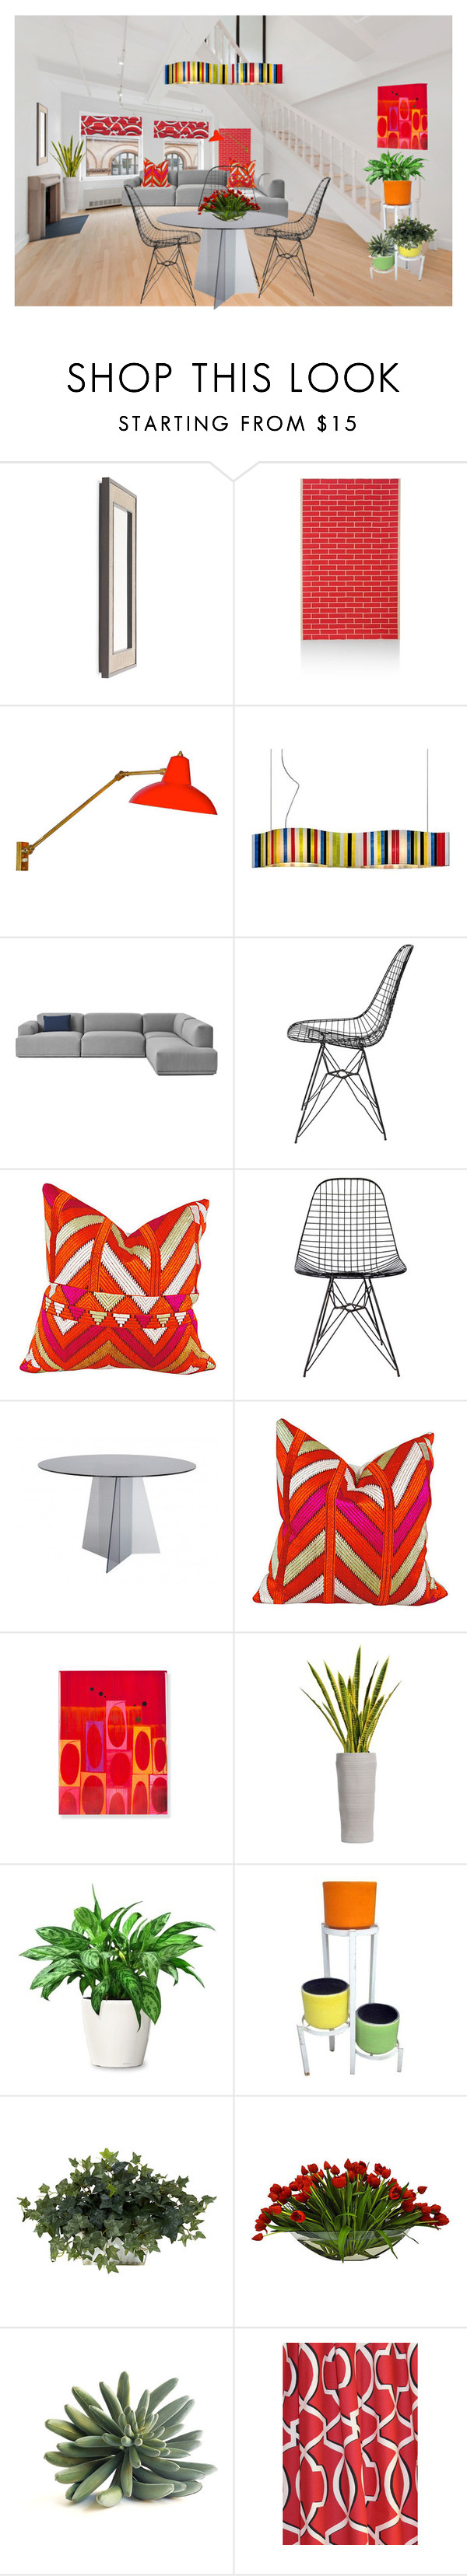 """Bright and bold"" by shistyle ❤ liked on Polyvore featuring interior, interiors, interior design, home, home decor, interior decorating, Mitchell Gold + Bob Williams, Herman Miller, Stilnovo and Arturo Alvarez"